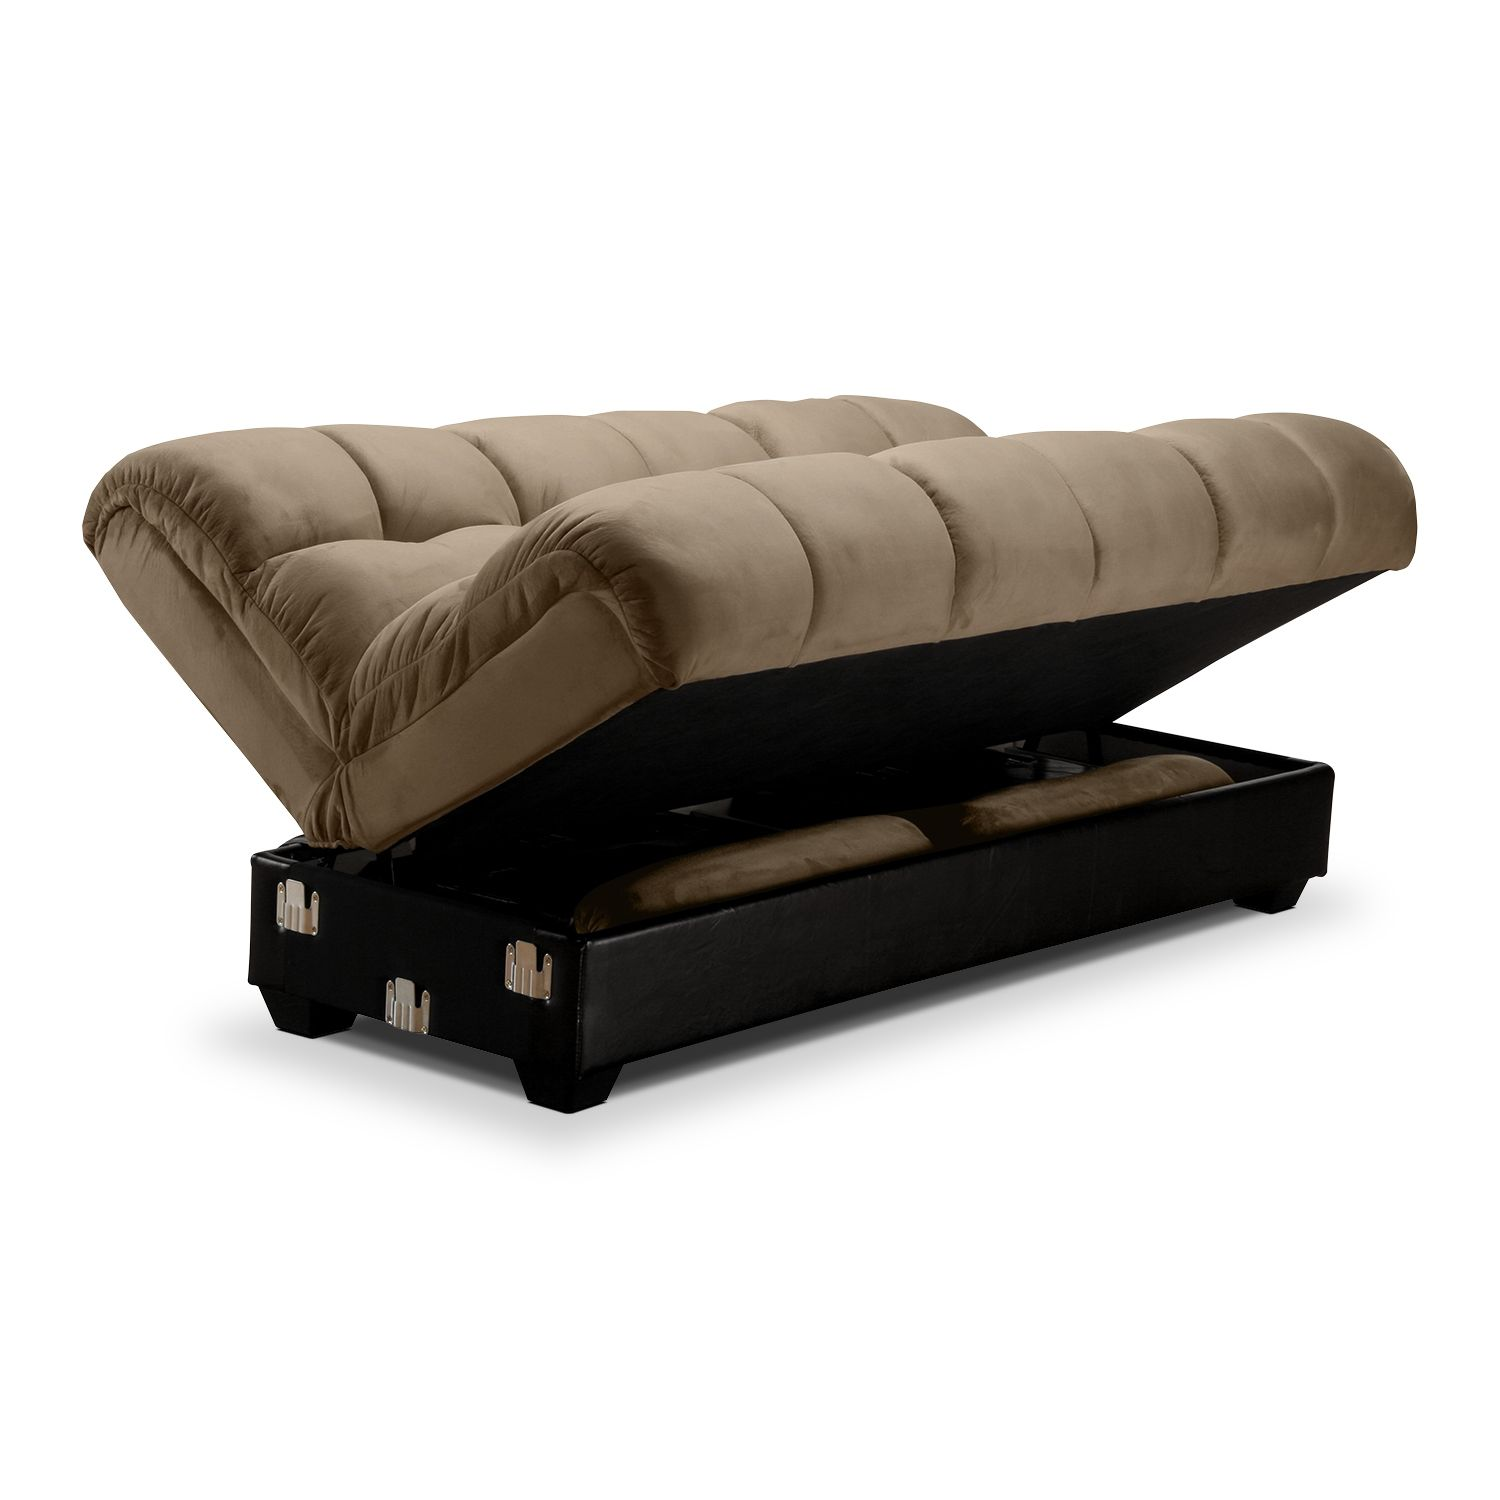 Overawe Futon Sofa Bed With Storage Underneath Futon